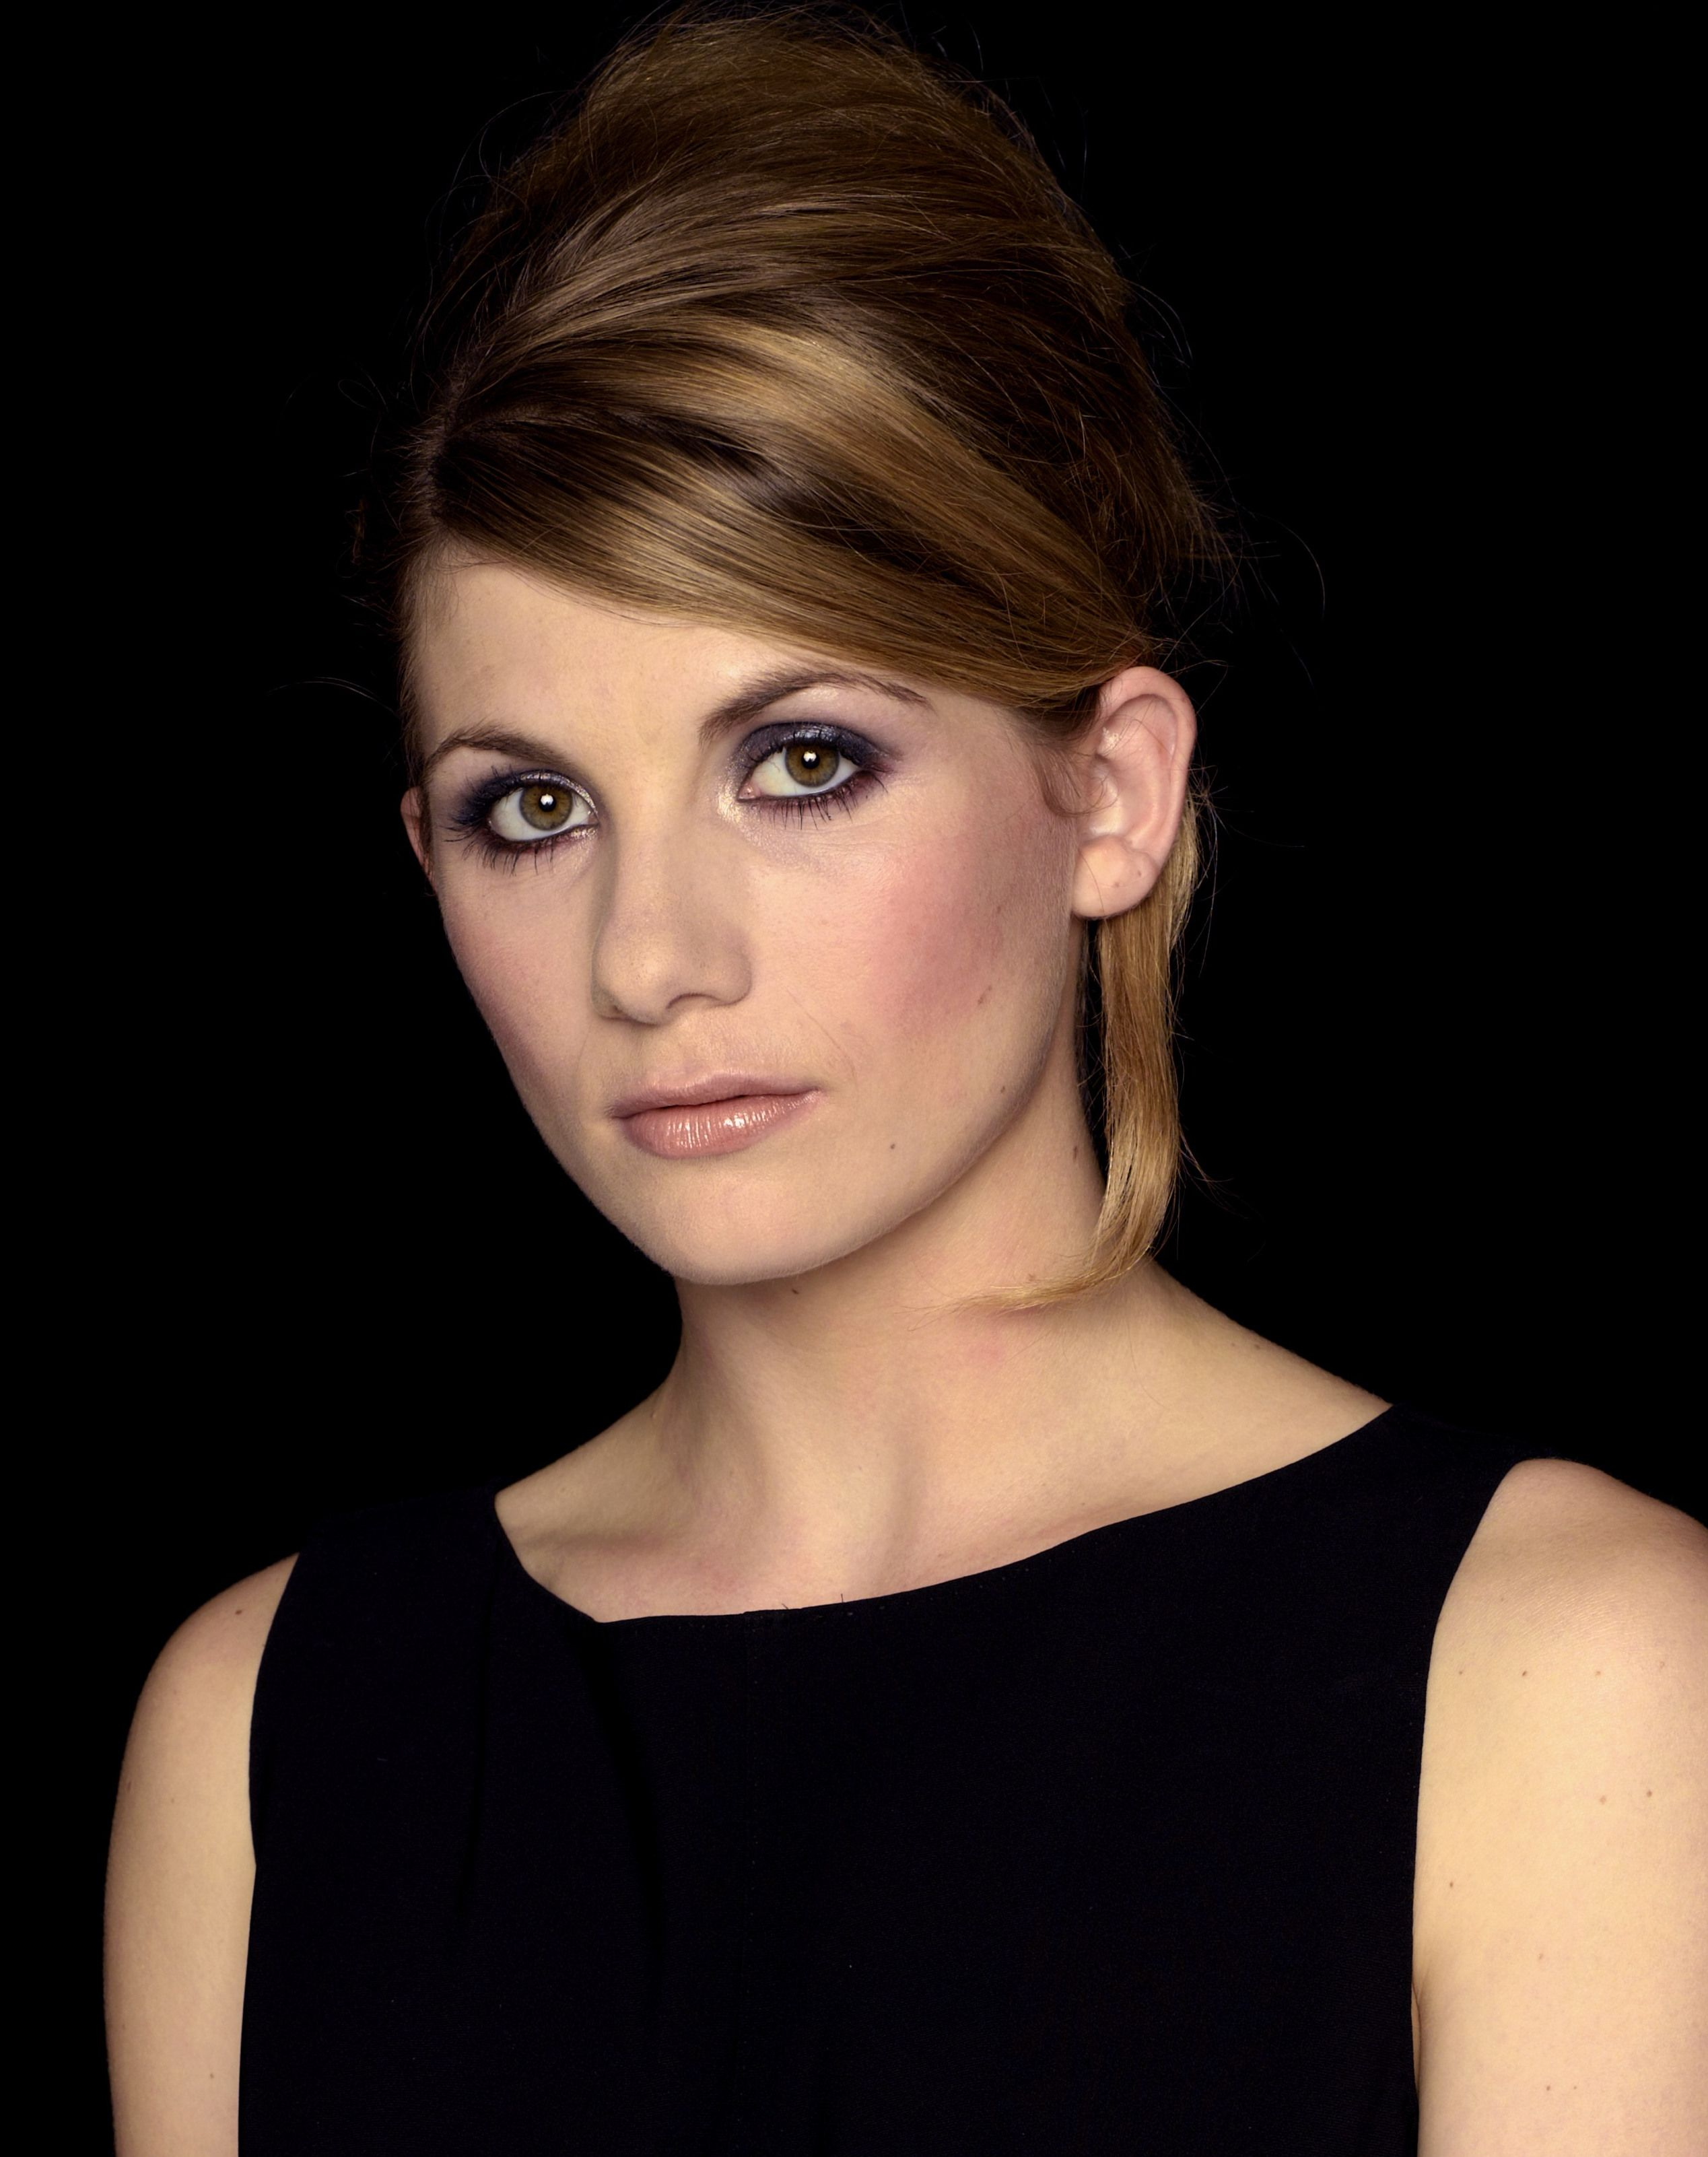 picture Jodie Whittaker (born 1982)